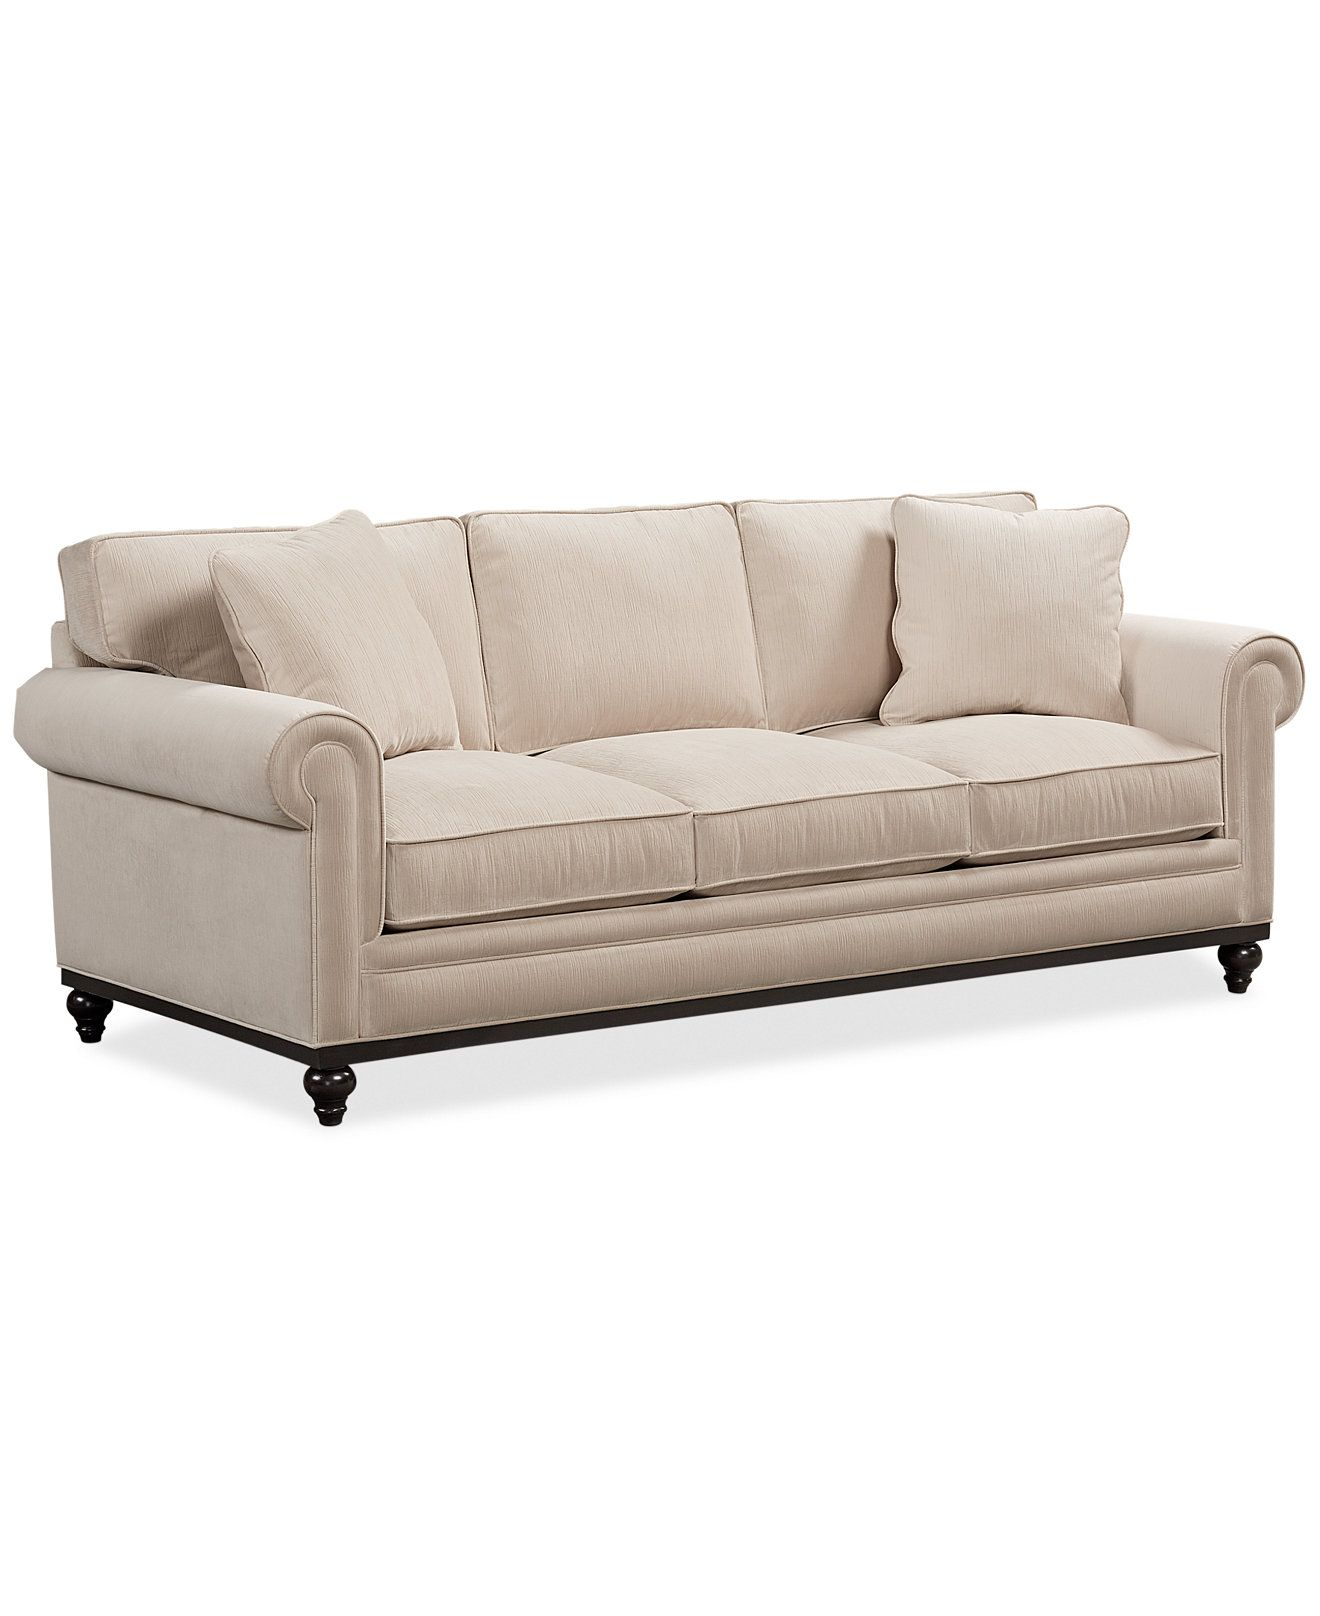 Incroyable Martha Stewart Collection New Club Fabric Roll Arm Sofa   Couches U0026 Sofas    Furniture   Macyu0027s